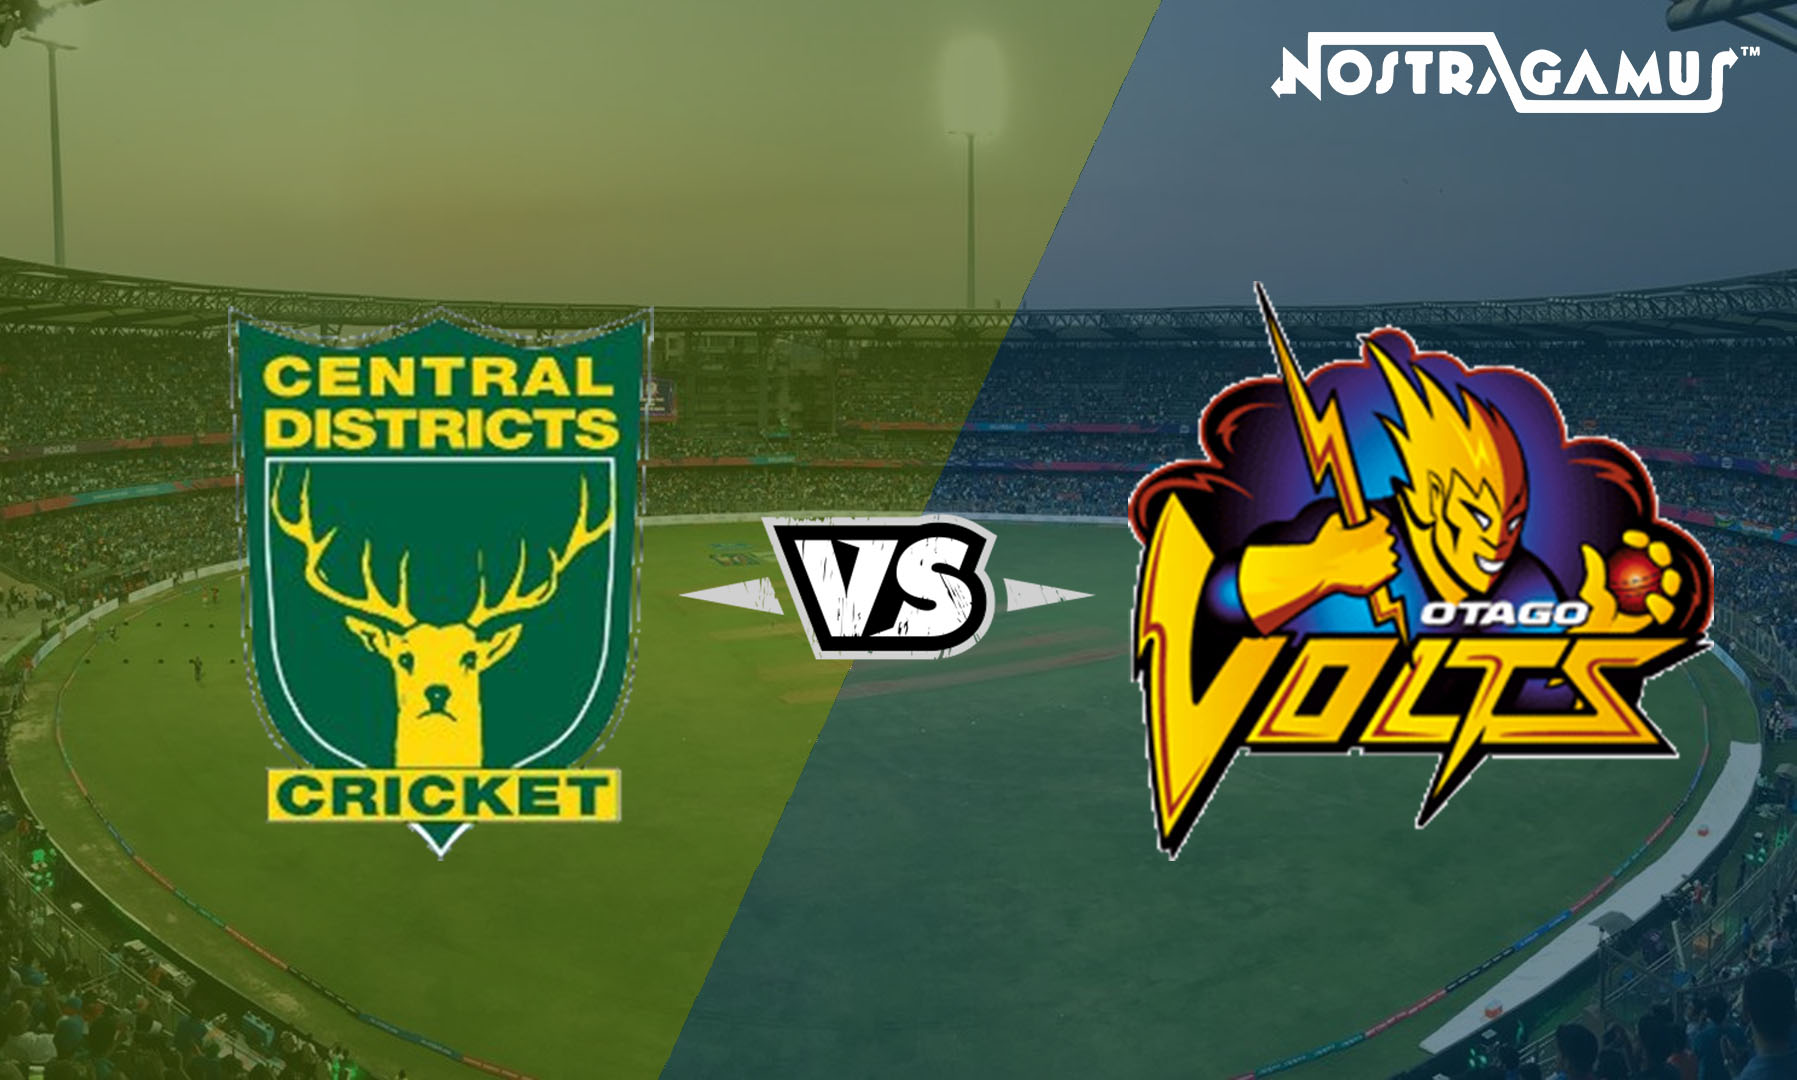 Super Smash T20 Match Prediction: Central Stags vs Otago Volts